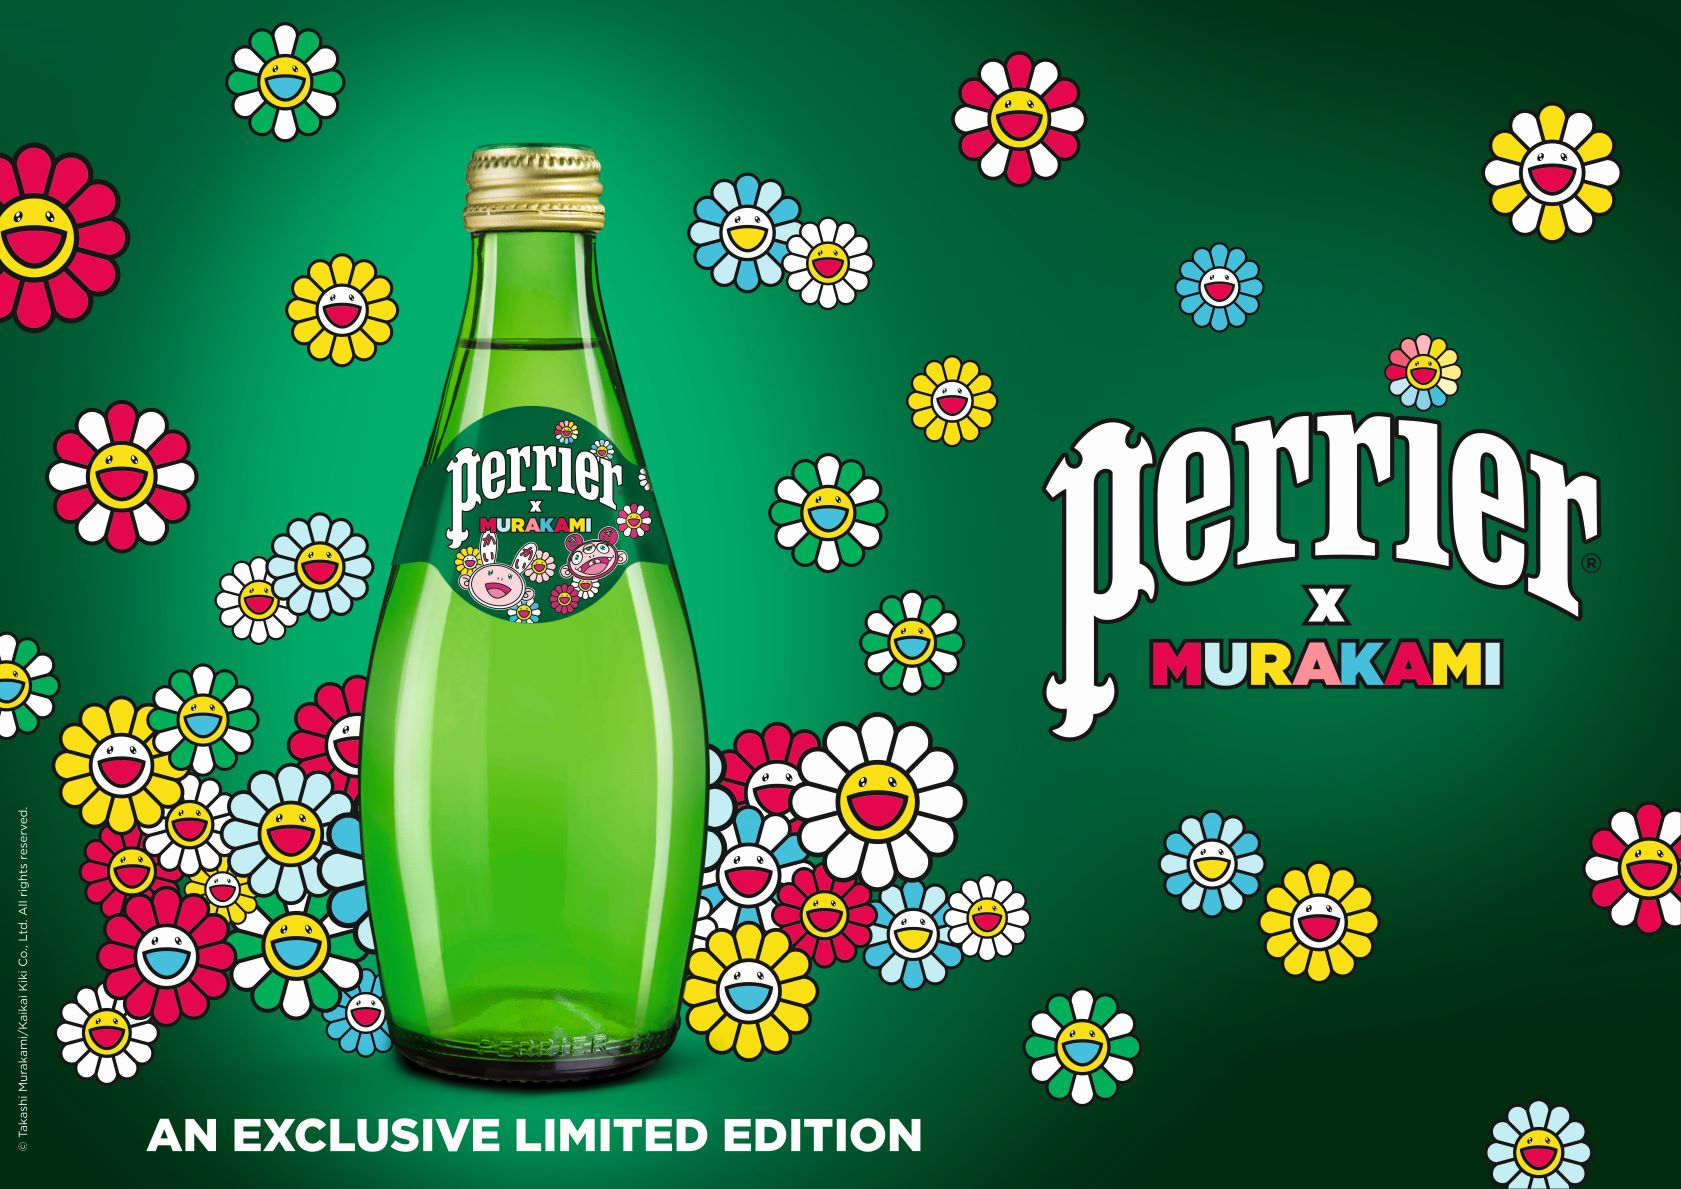 200527_PERRIER_MURAKAMI_KV_x1Pack_Horizontal_33cl_VP_Label_KK